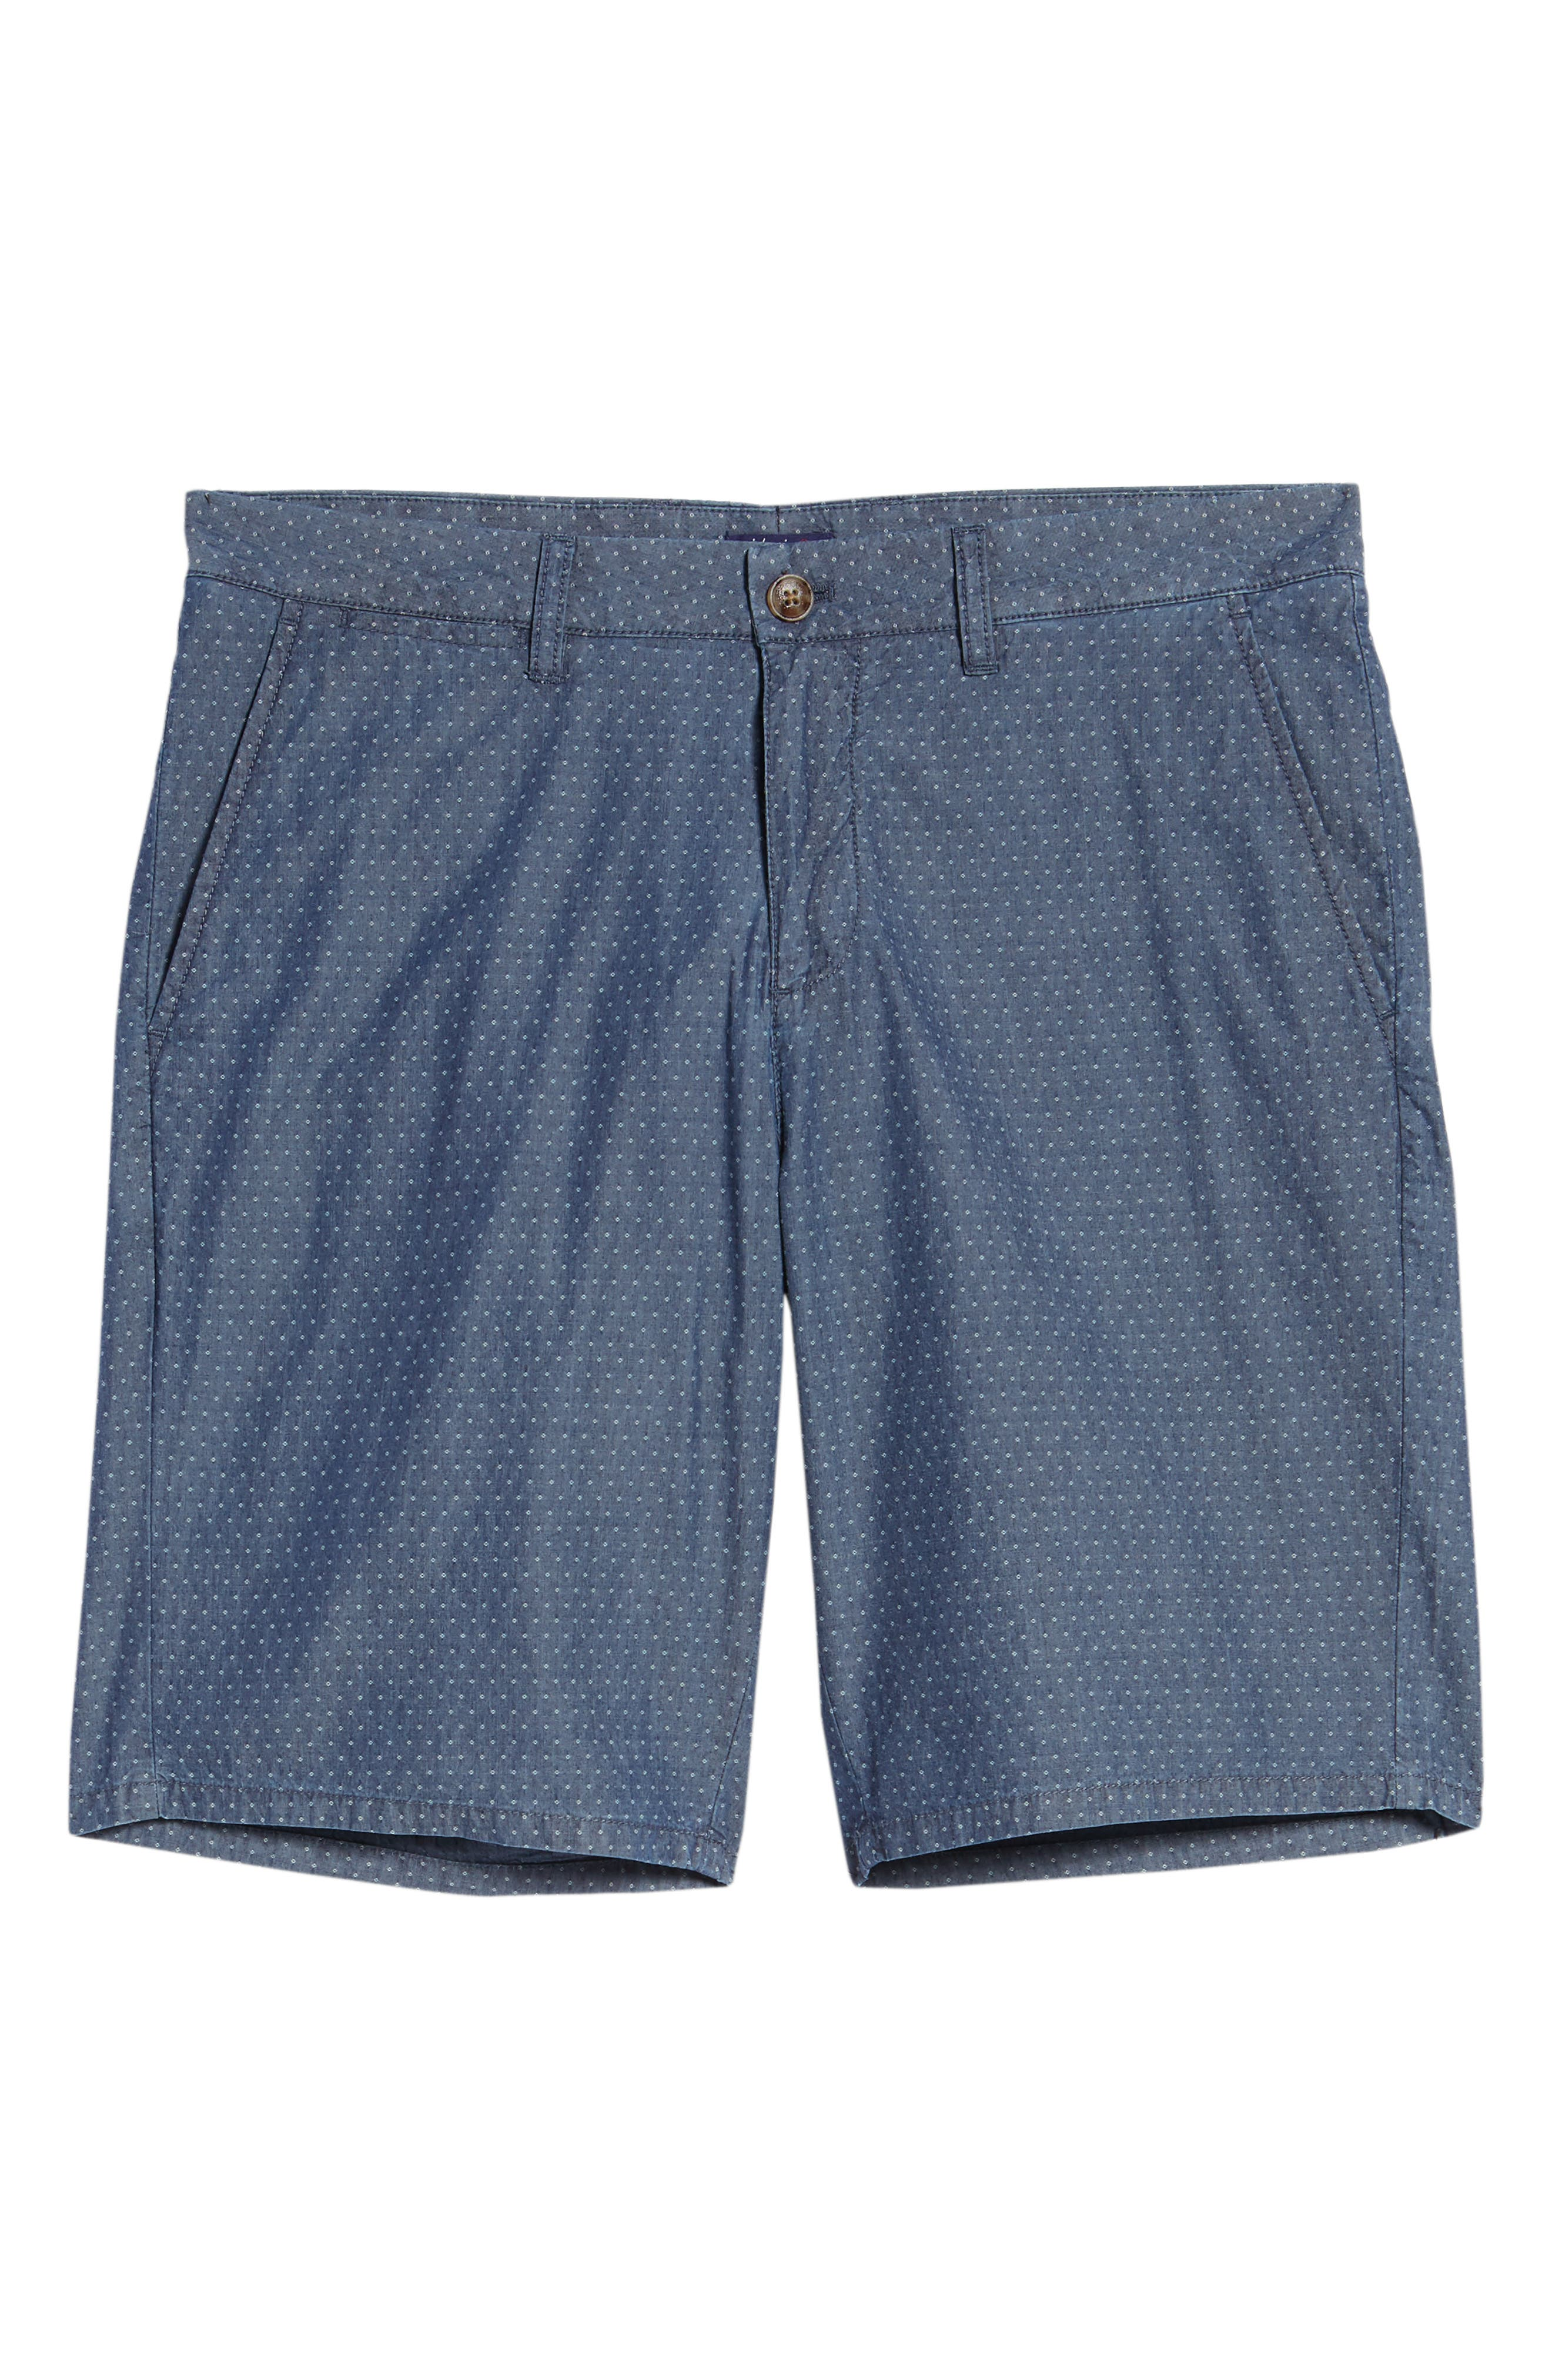 Oliver Classic Fit Chambray Jacquard Shorts,                             Alternate thumbnail 6, color,                             Chambray